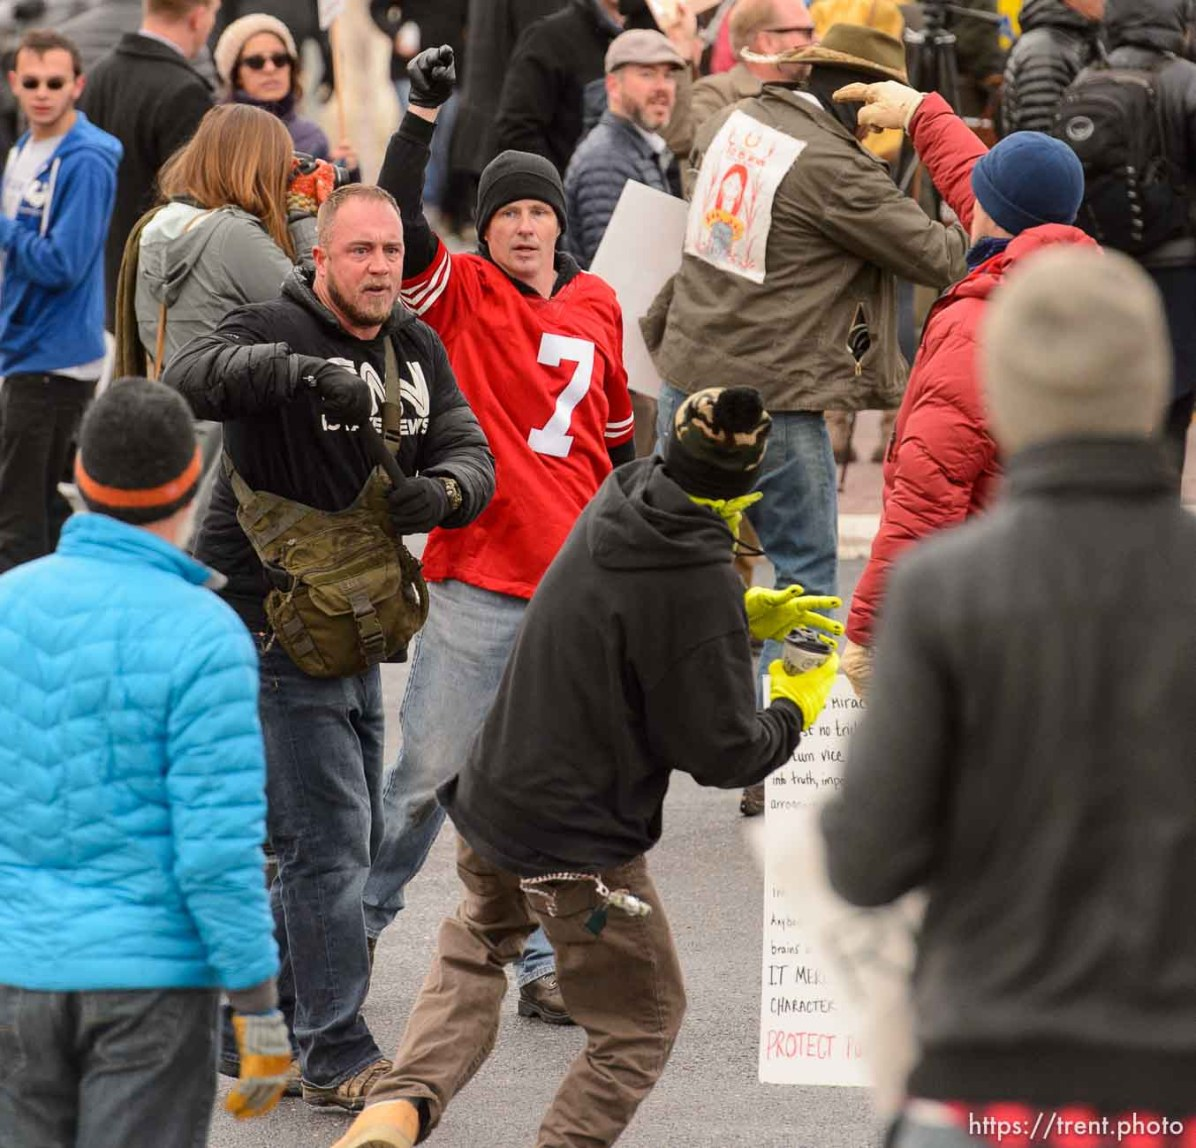 (Trent Nelson | The Salt Lake Tribune) A man pulls out a self defense baton as another man prepares to throw a drink at him. Protesters rally against a visit by President Donald Trump, Monday December 4, 2017.